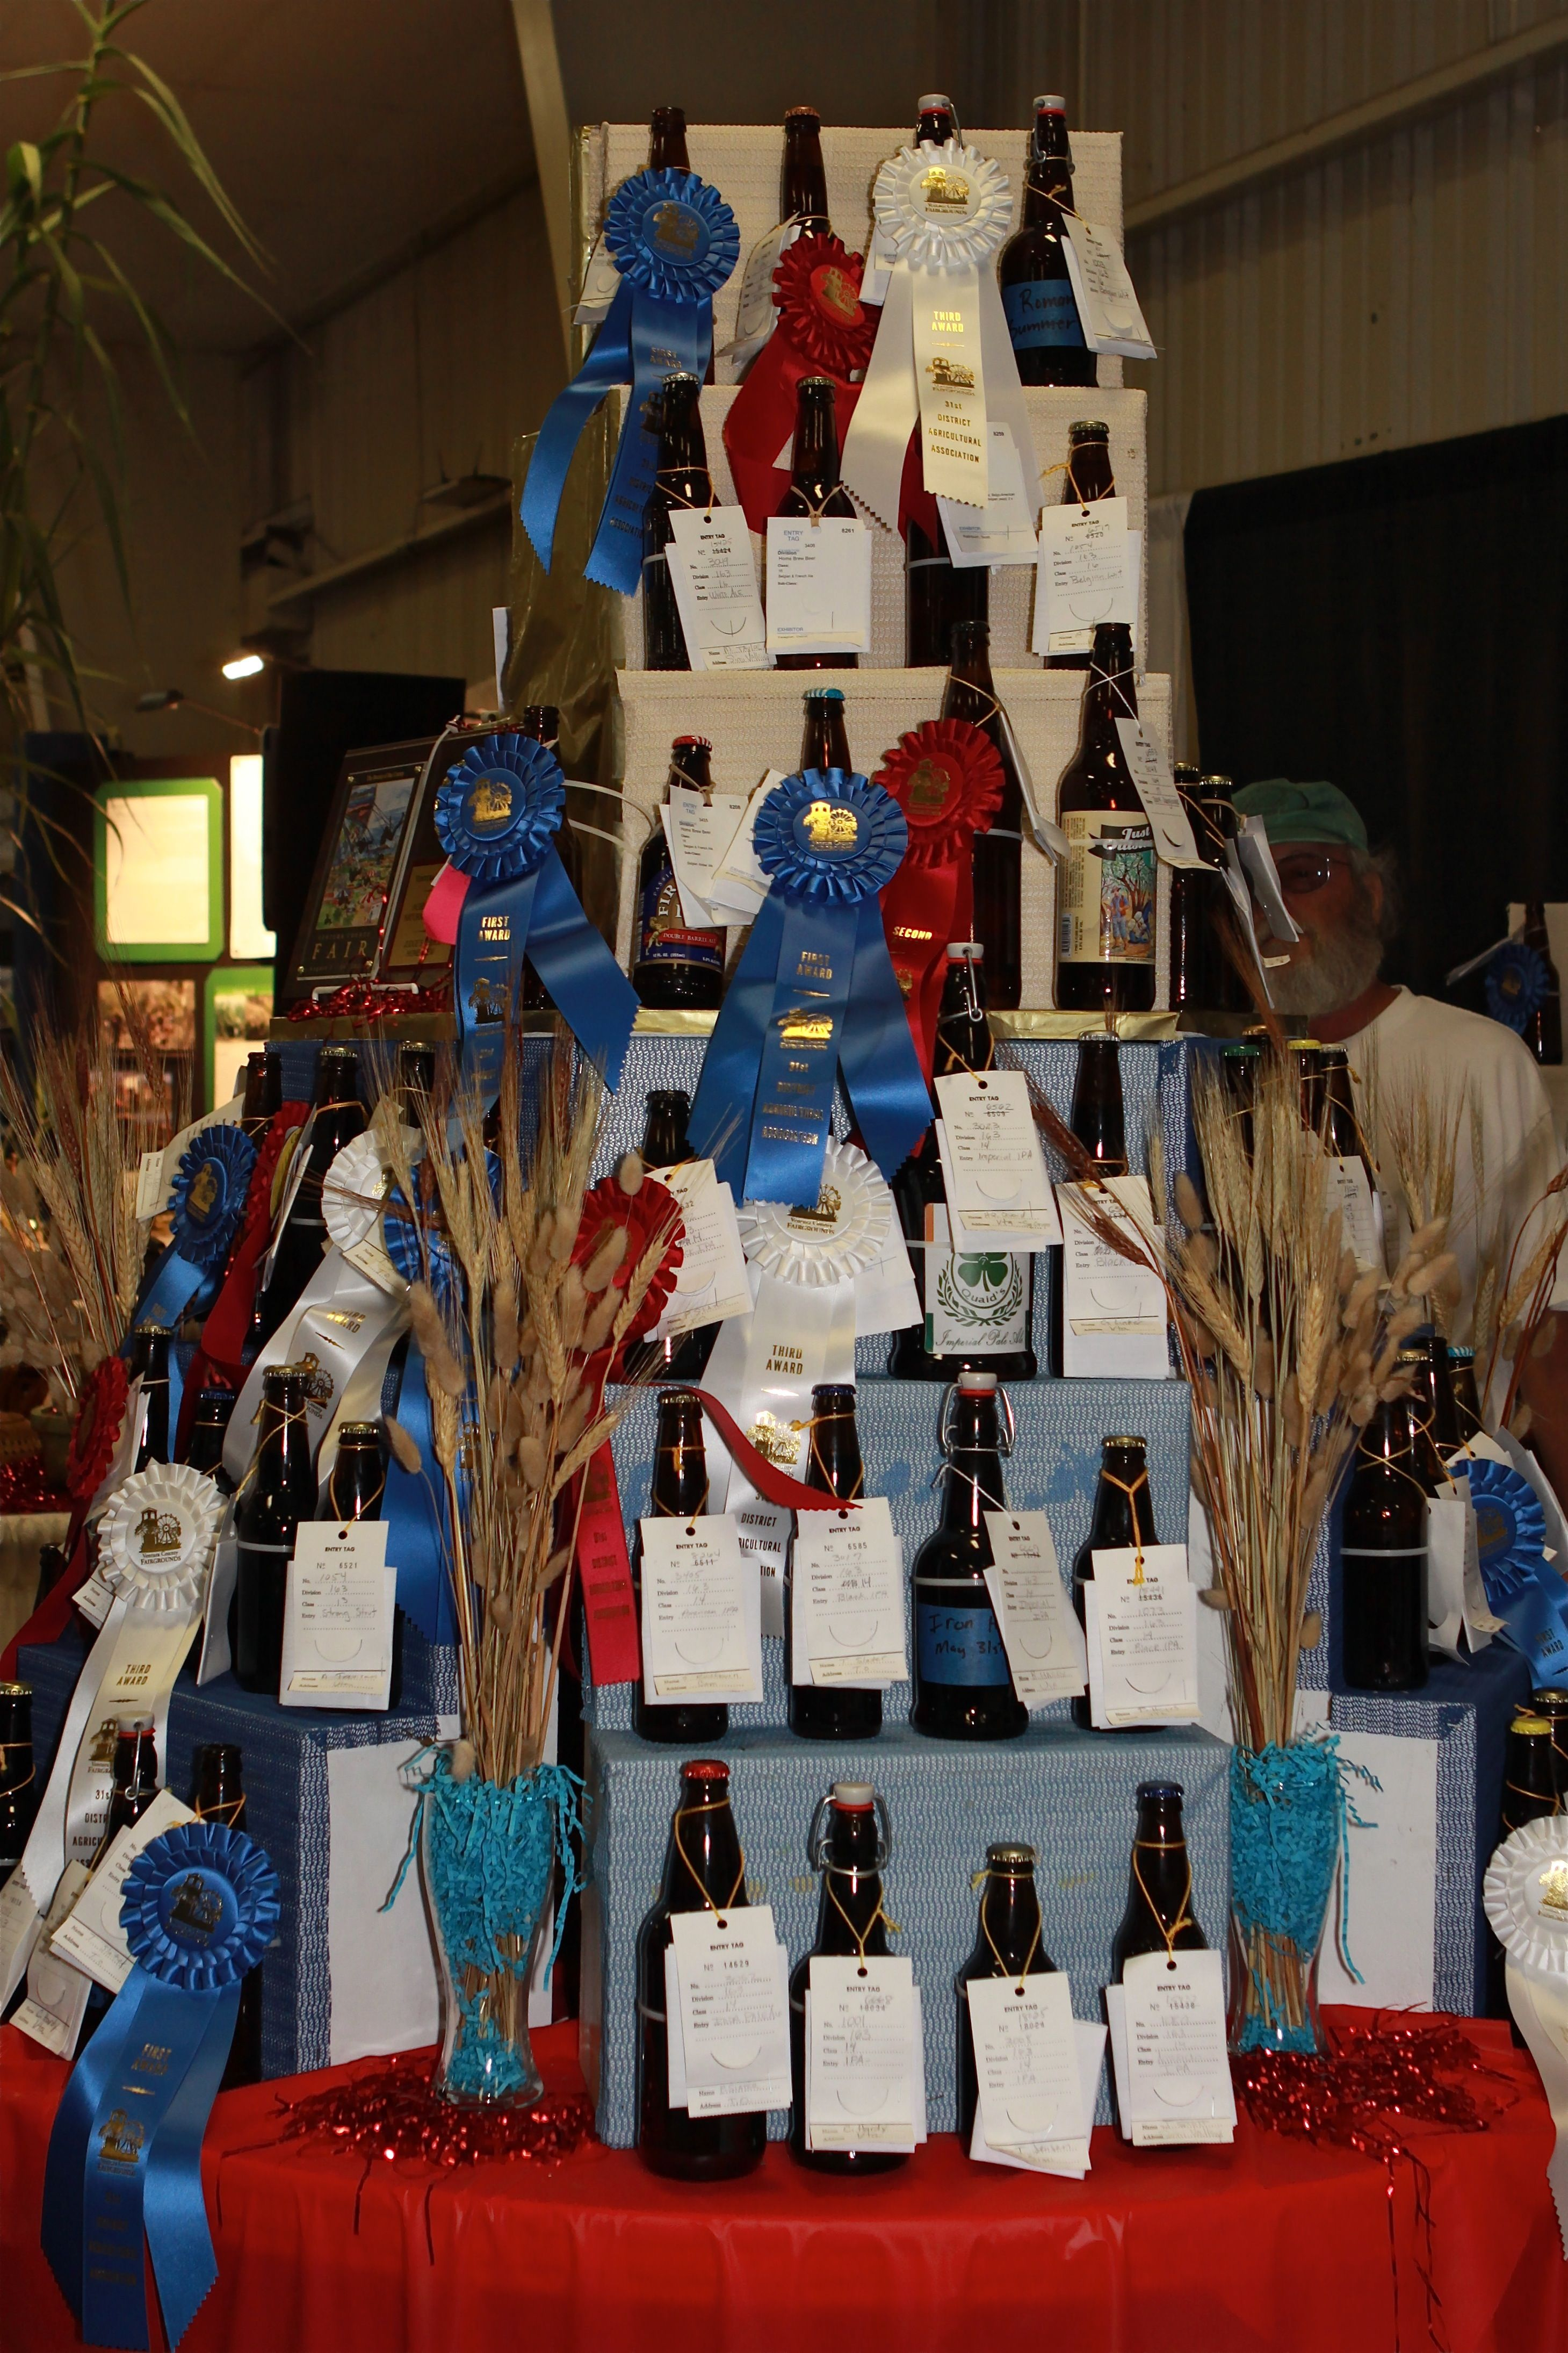 Winning Beer entries at the Ventura County Fair. County